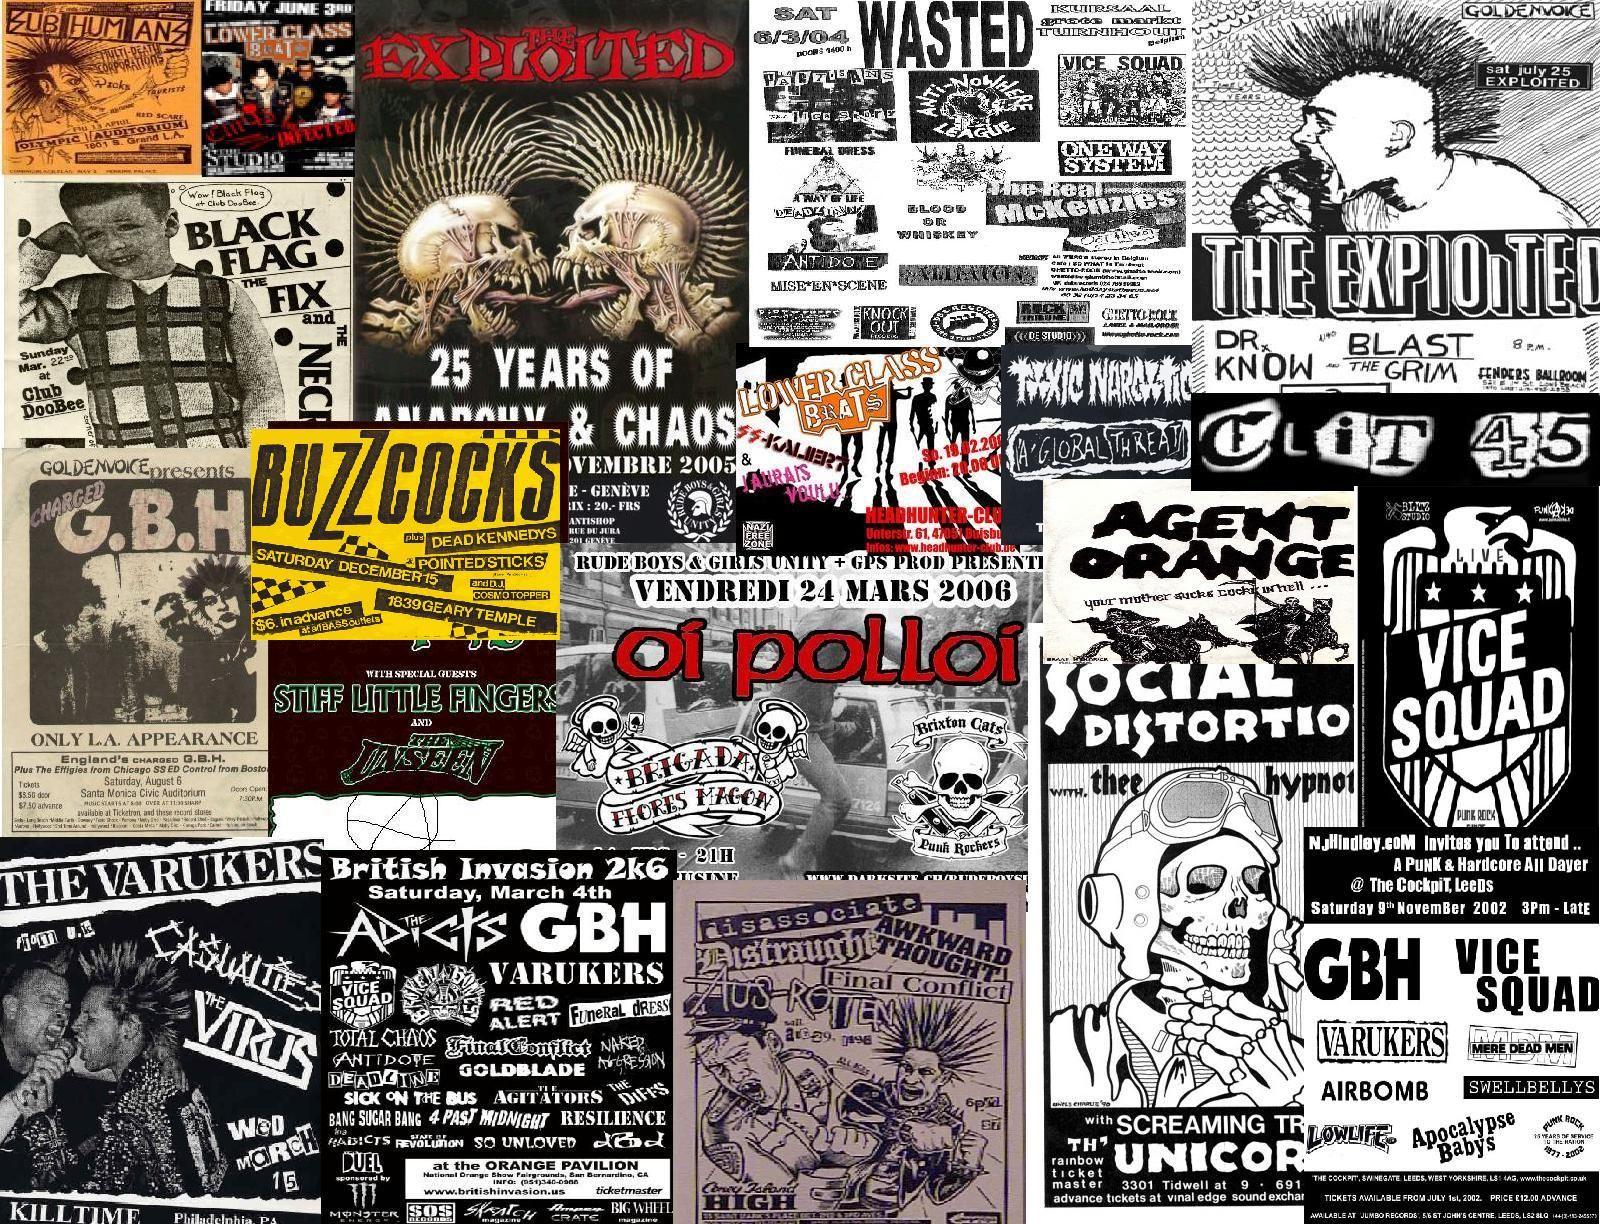 punk rock flyer wallpaper.lowerclasschaos.deviantart on